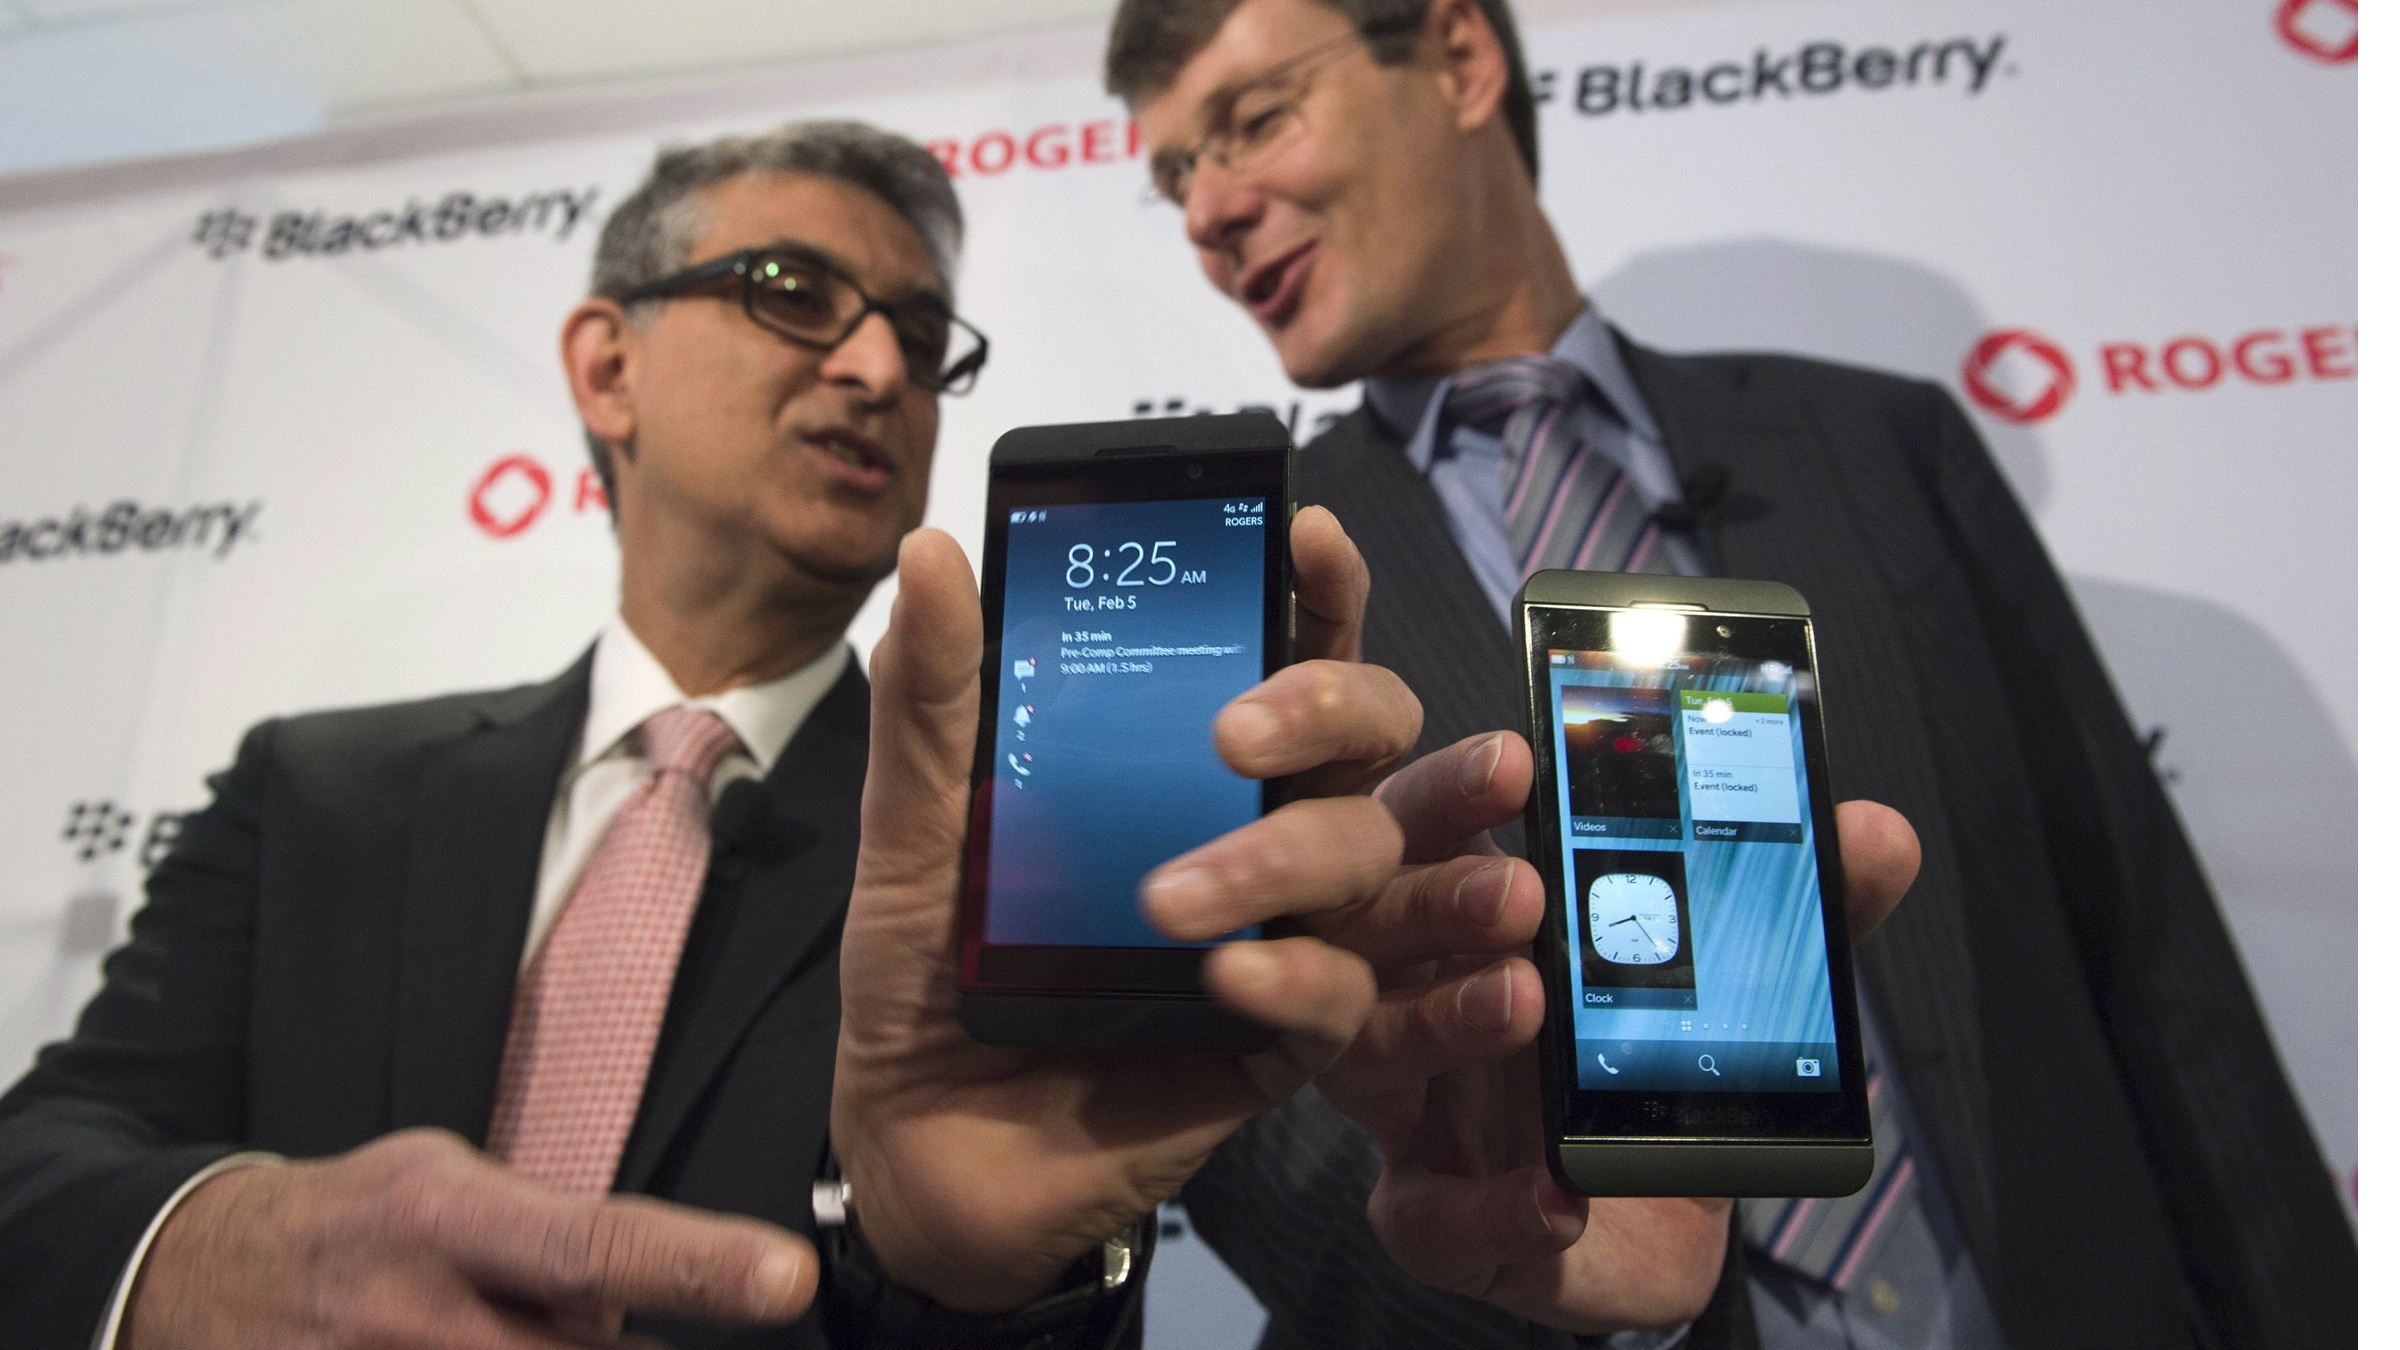 Blackberry President and CEO Thorsten Heins, right, and Rogers Communications President and CEO Nadir Mohamed show off their Blackberry Z10 devices before presenting one to the first customer at a store in Toronto on Tuesday, Feb. 5, 2013. (AP Photo/The Canadian Press,Frank Gunn)